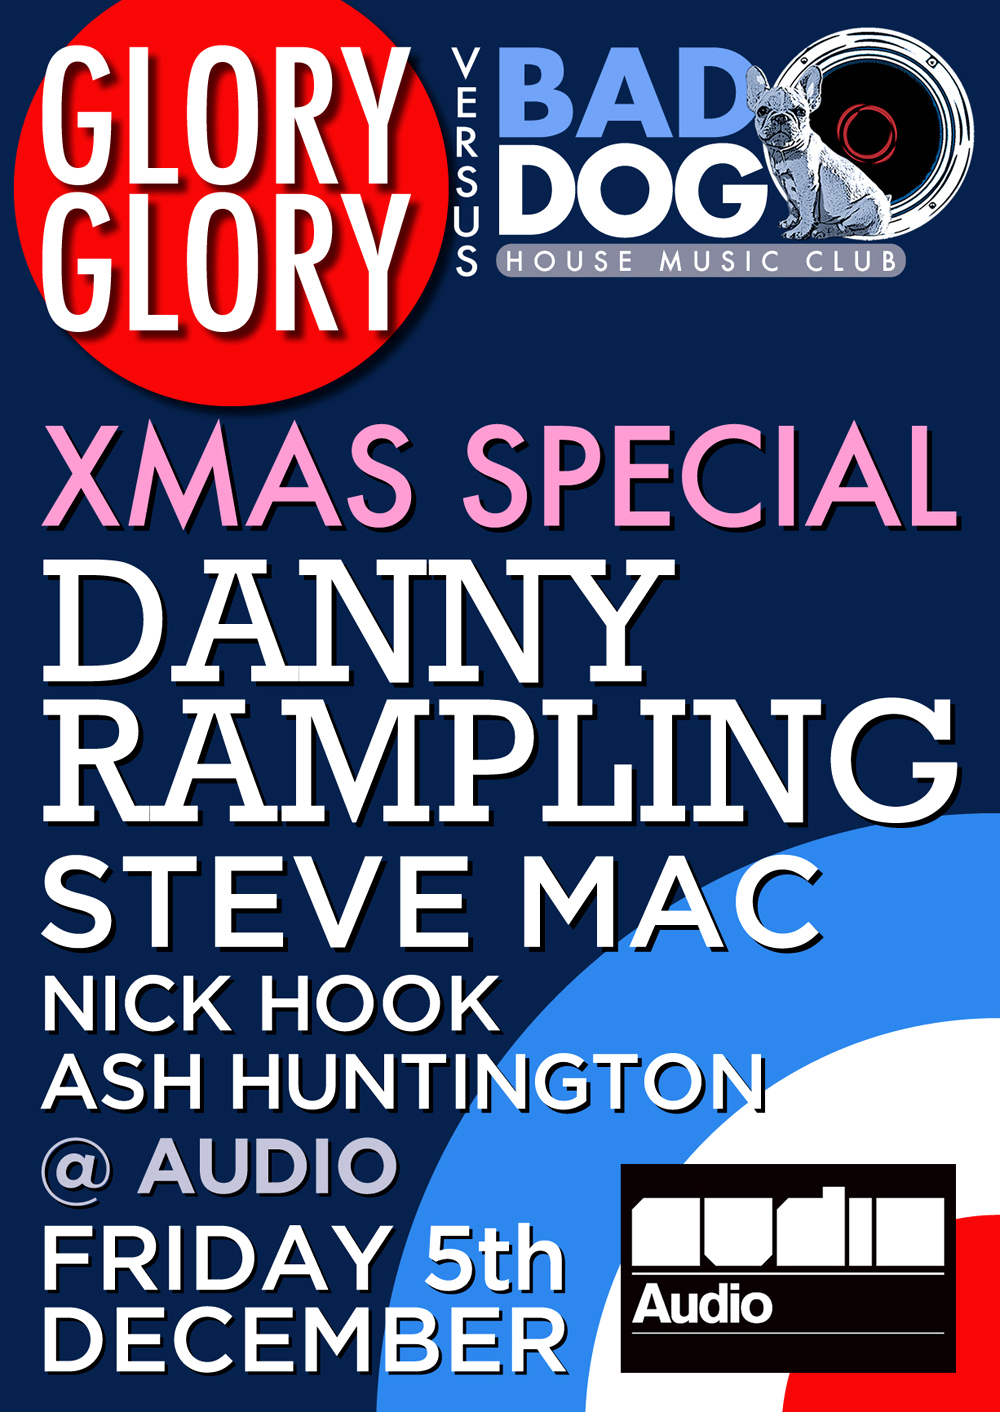 Glory Glory Vs Bad Dog Xmas flyer designed by Hook Web & Print